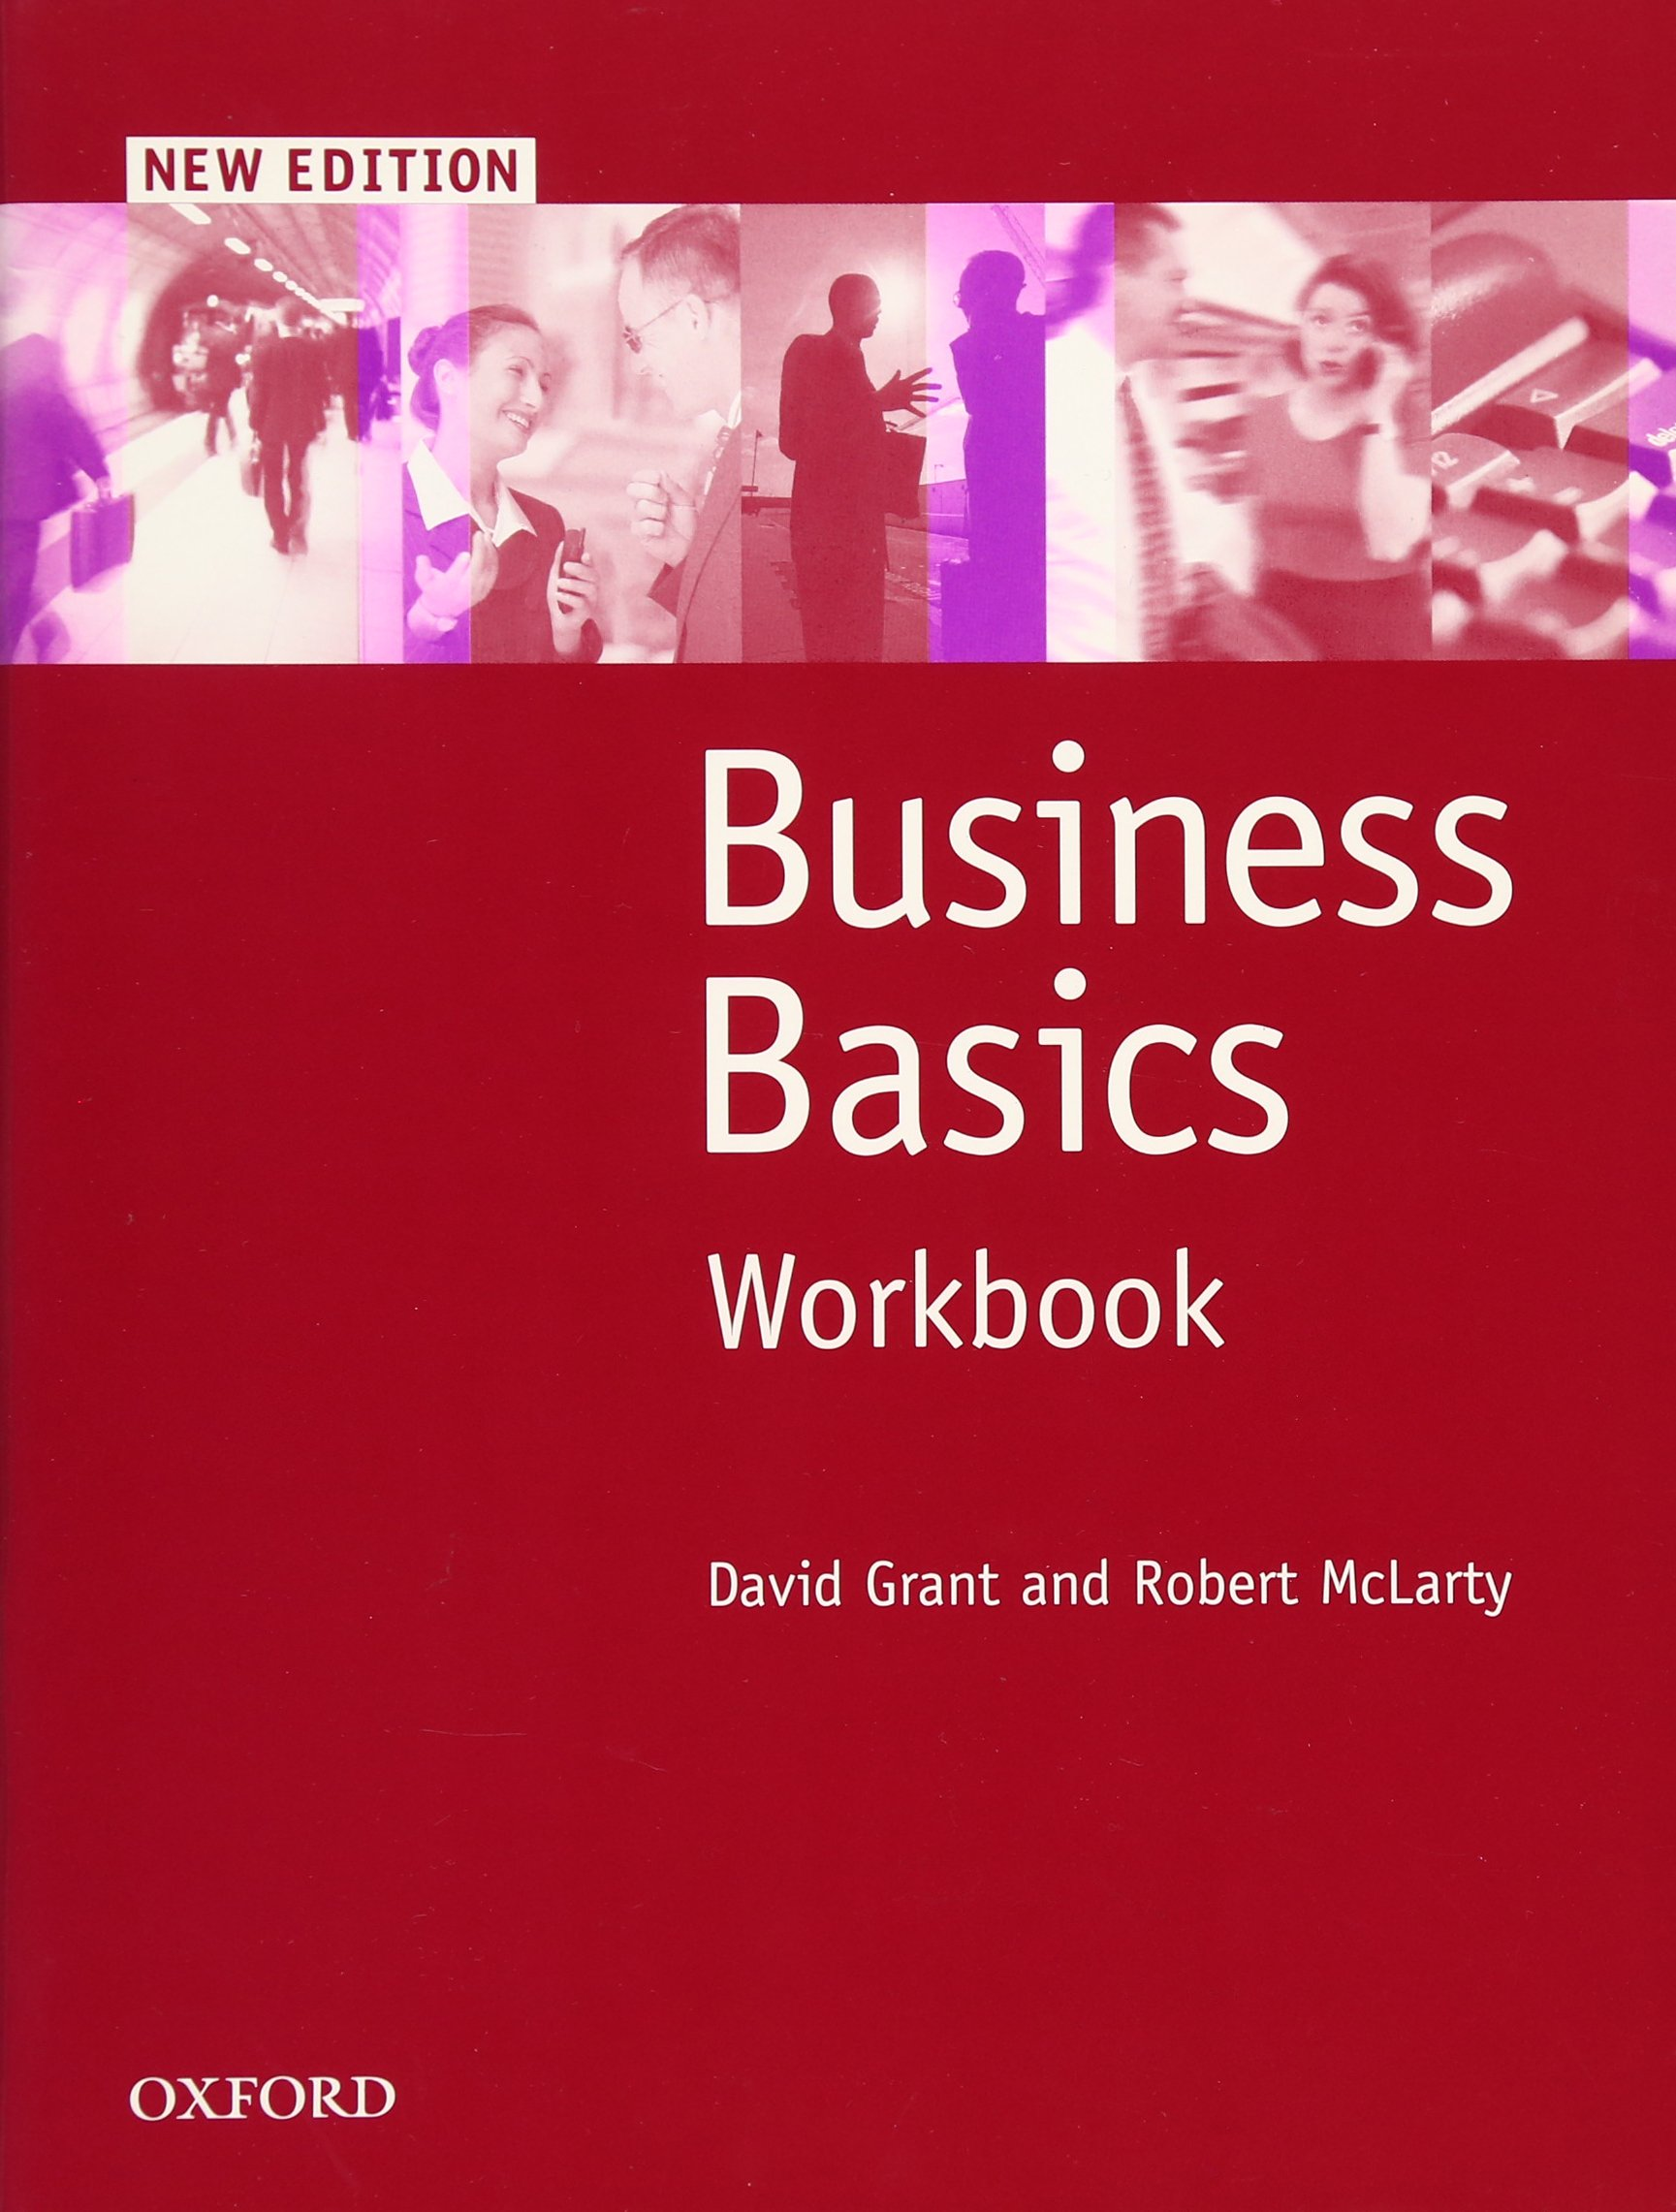 Image OfBusiness Basics New Edition: Workbook